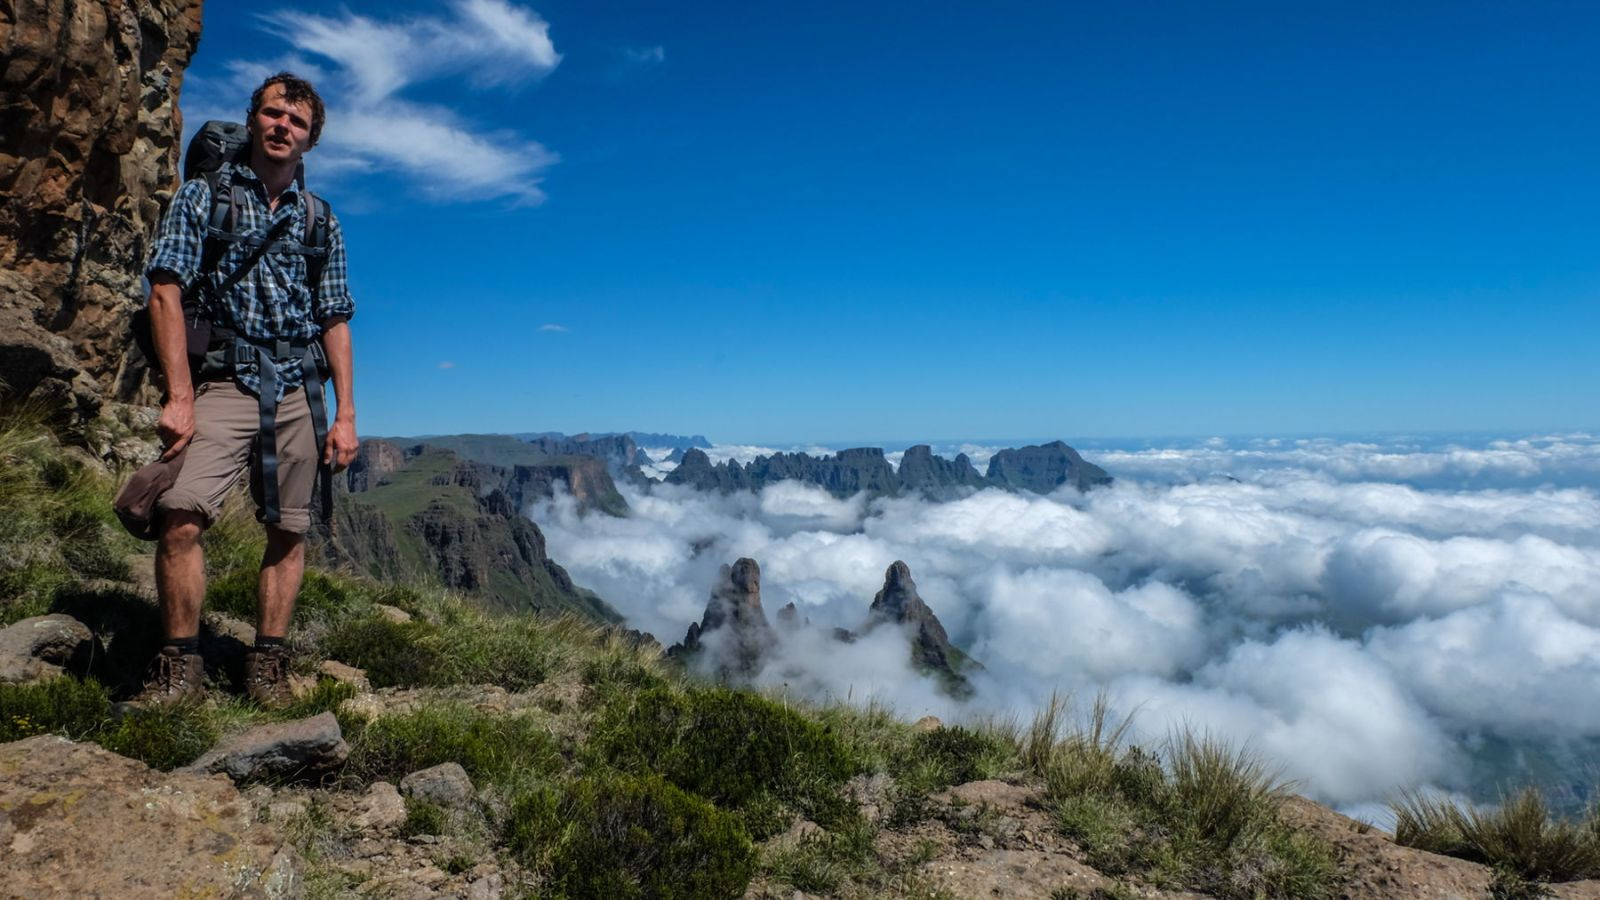 photo from mountain plateau above the clouds in the drakensberg mountains